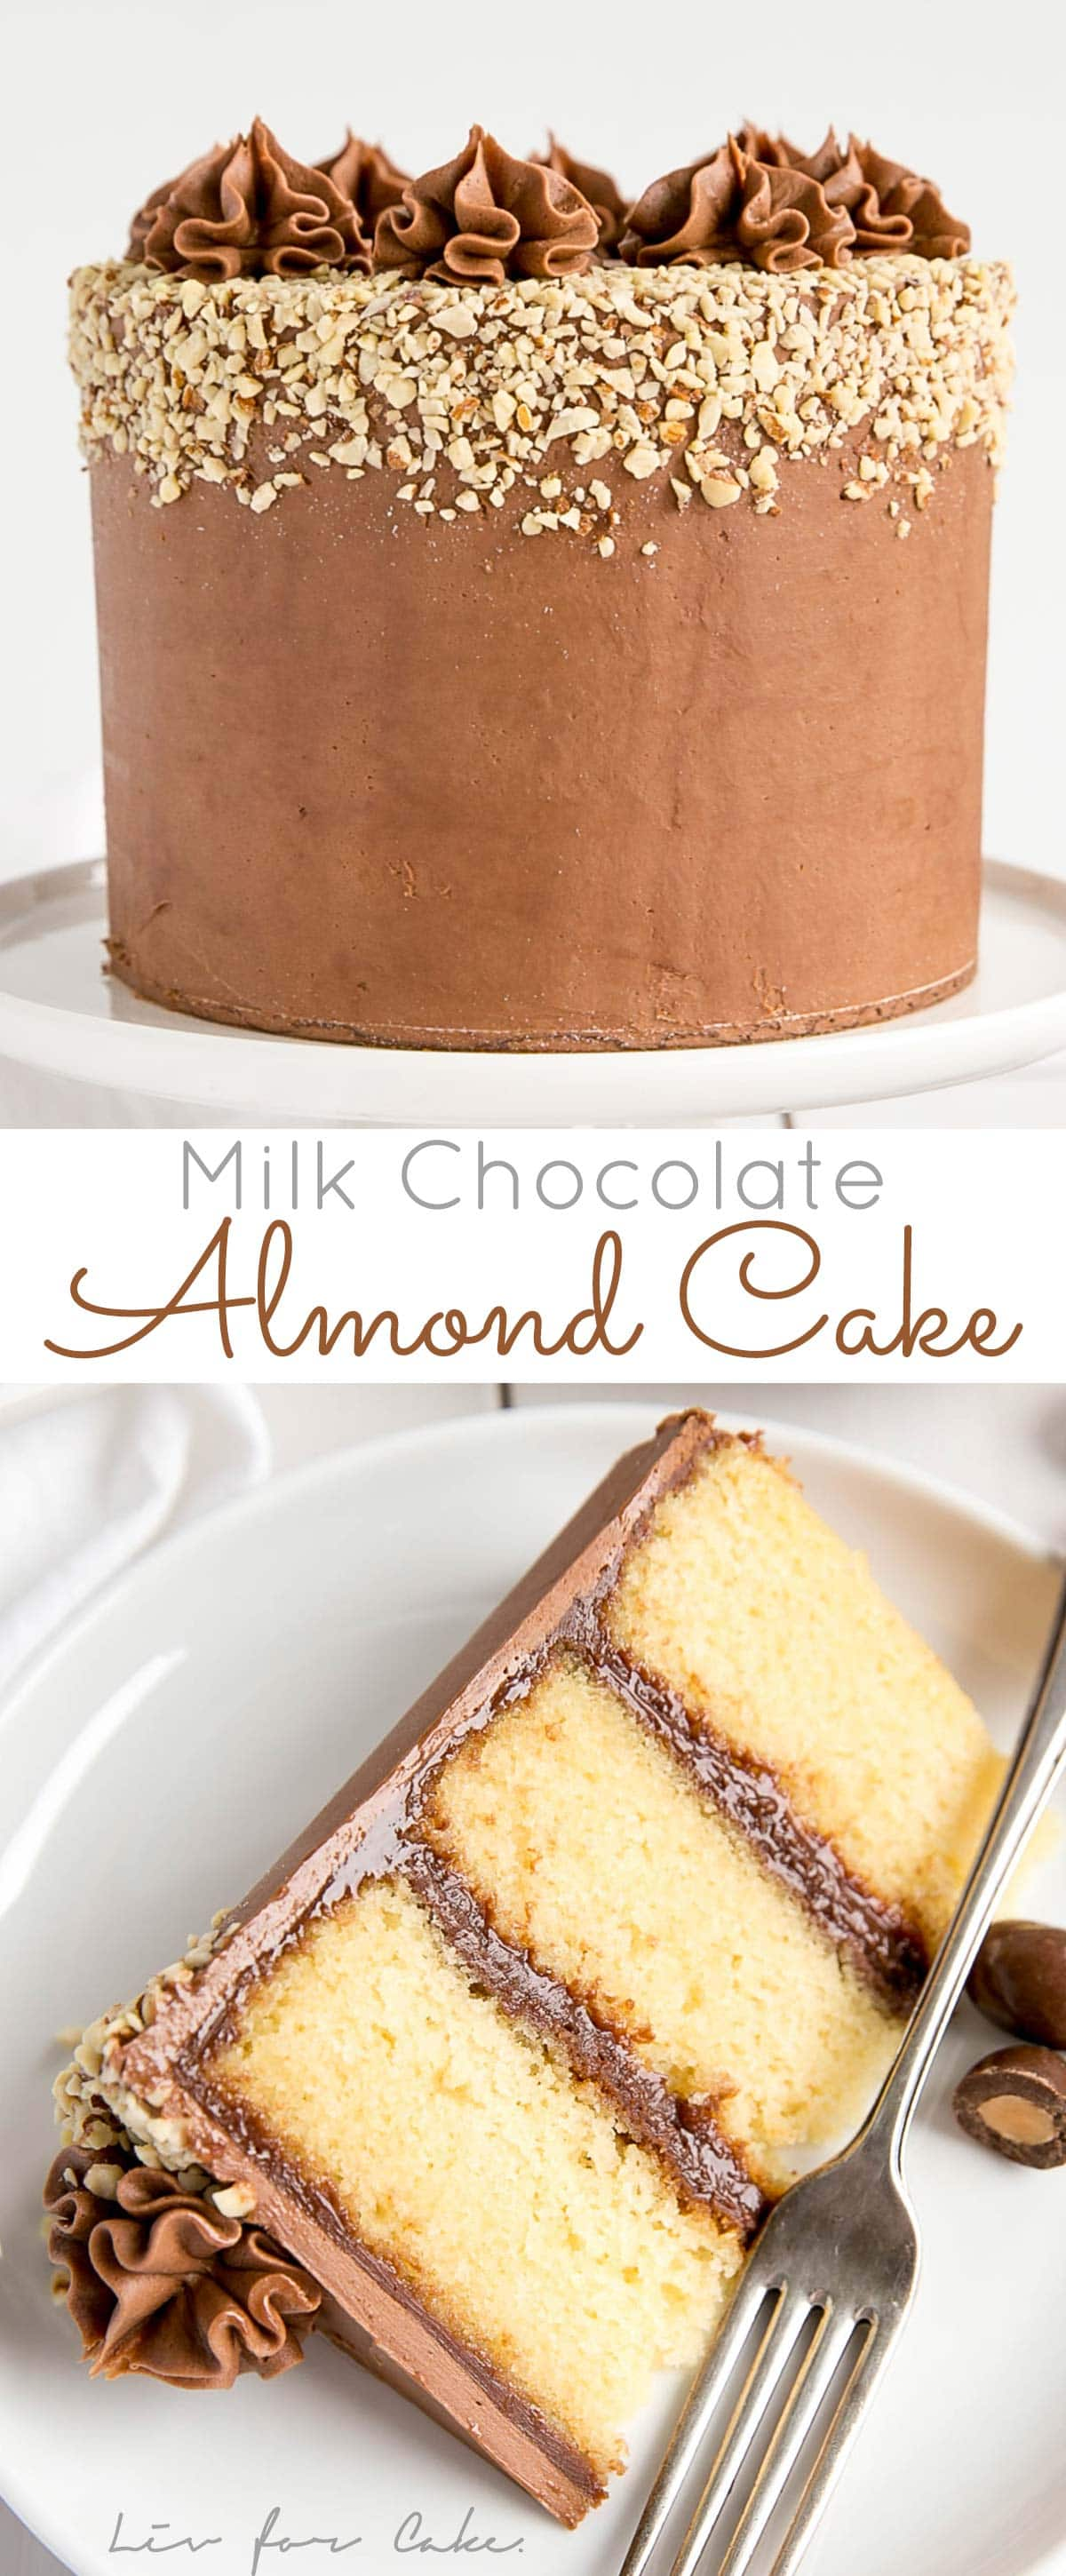 Milk Chocolate Almond Cake!